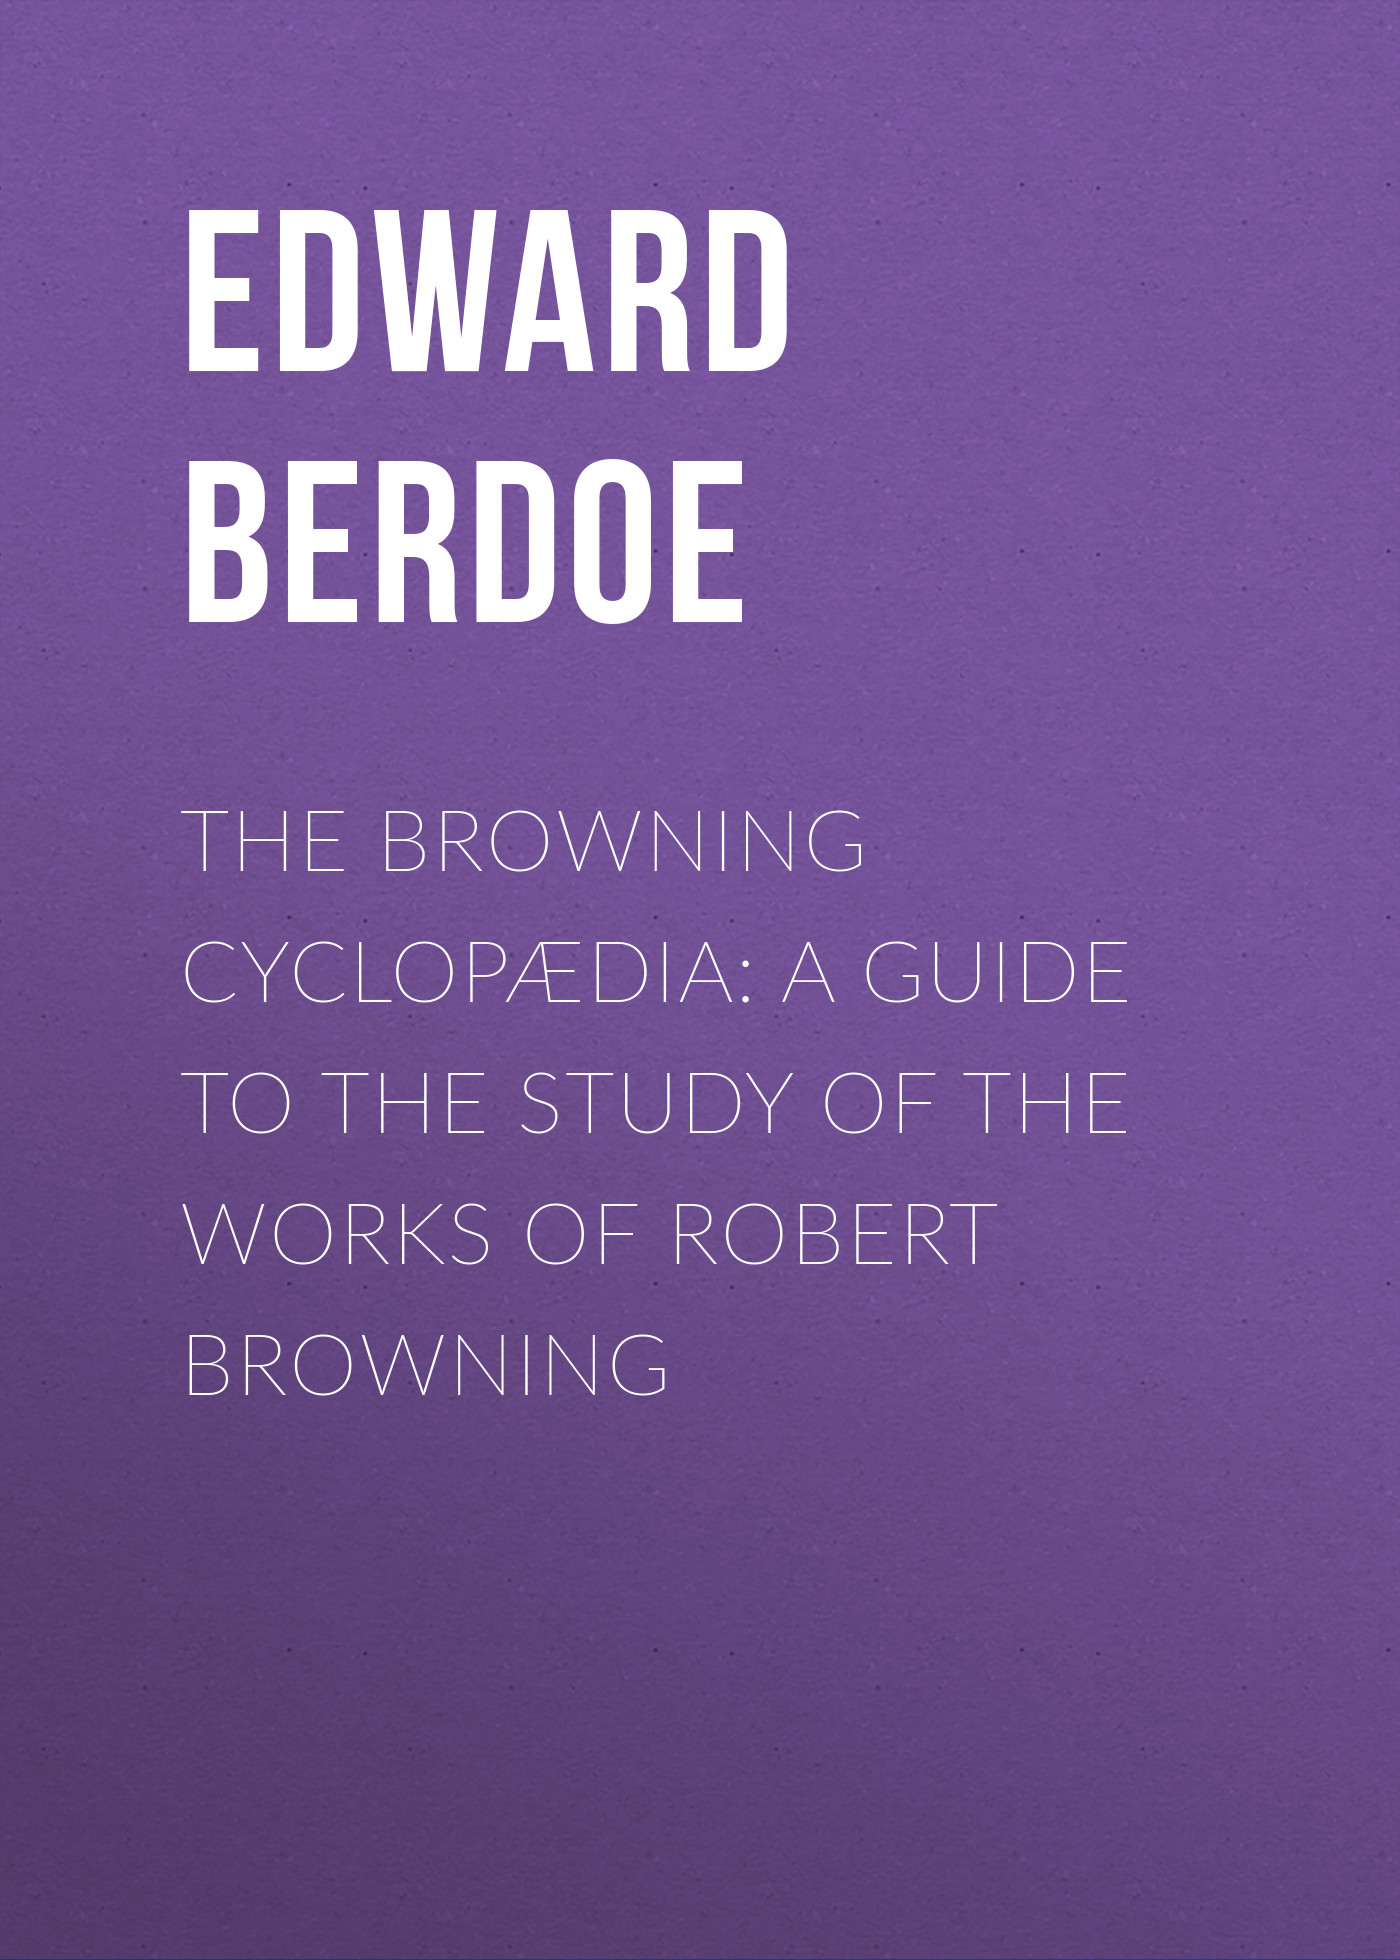 Edward Berdoe The Browning Cyclopædia: A Guide to the Study of the Works of Robert Browning цена и фото